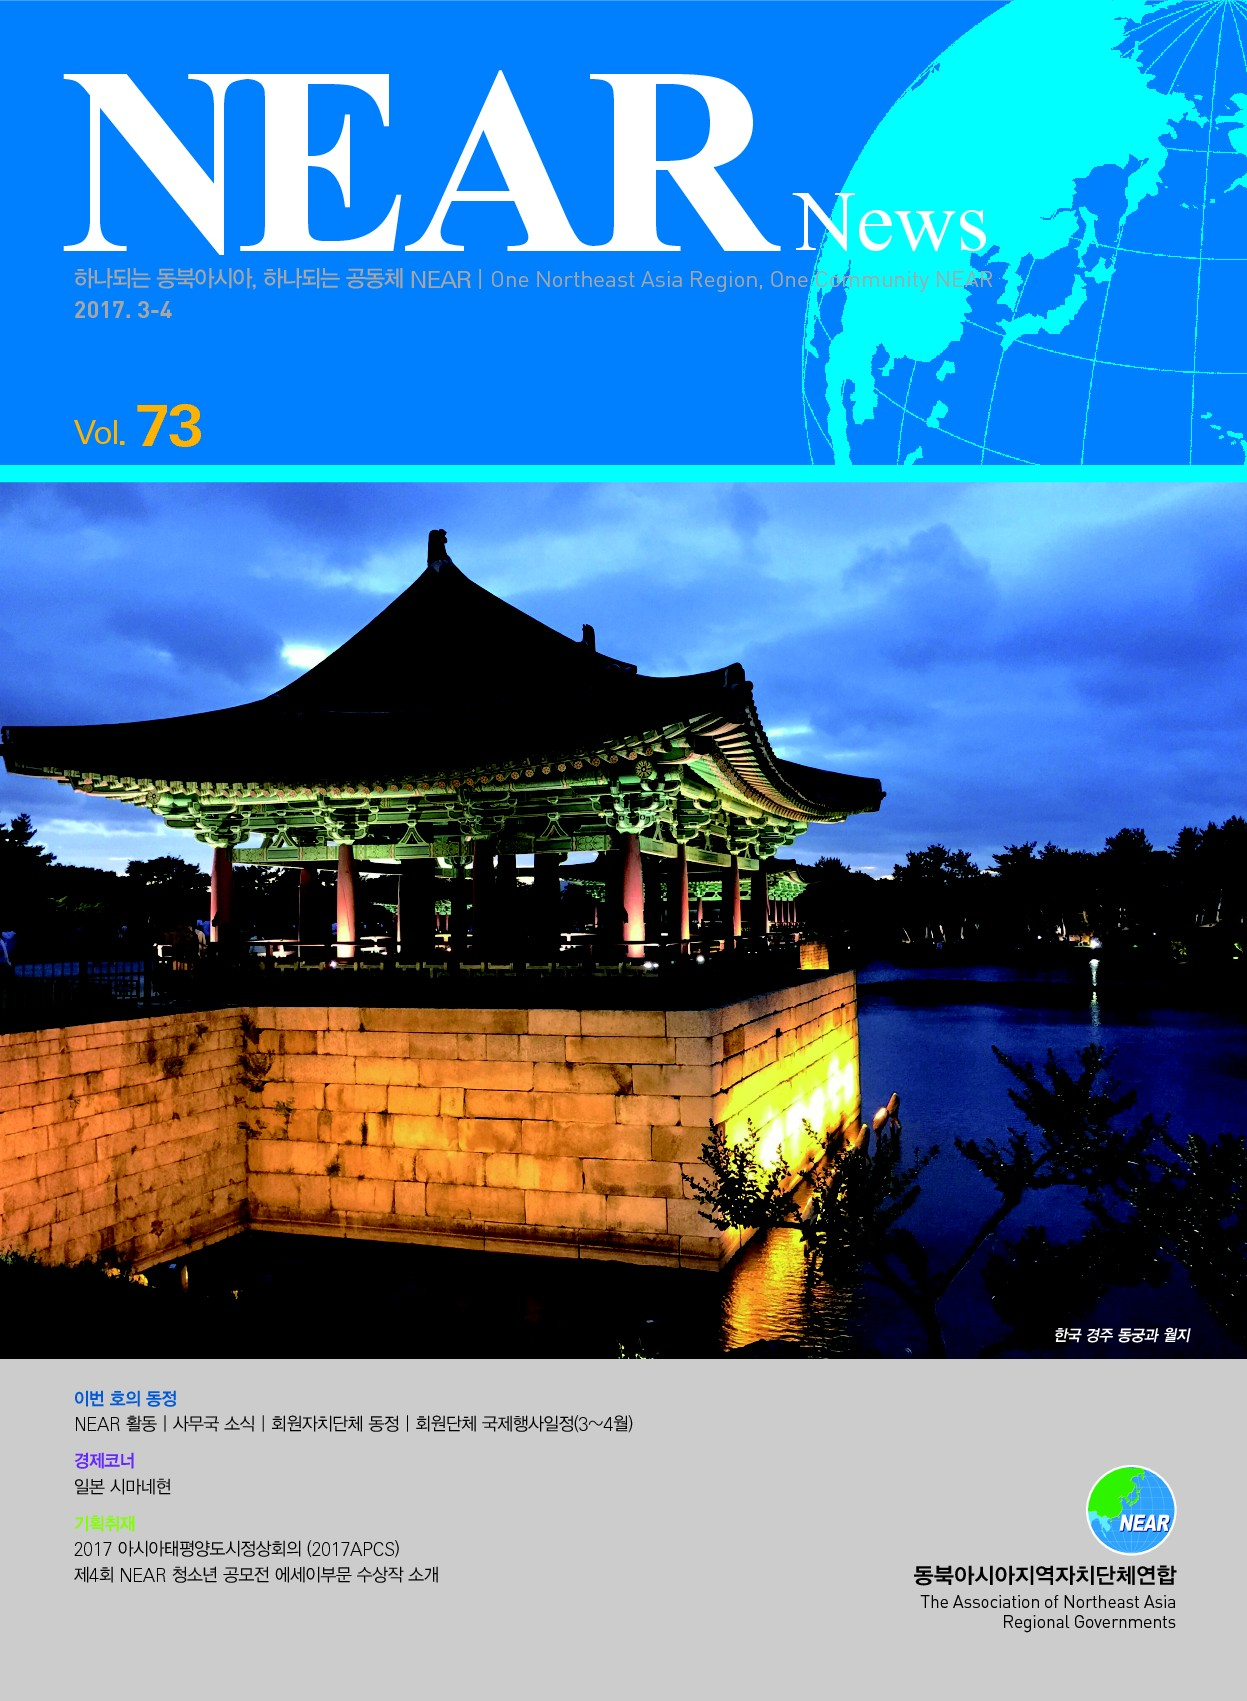 NEAR News Vol.73